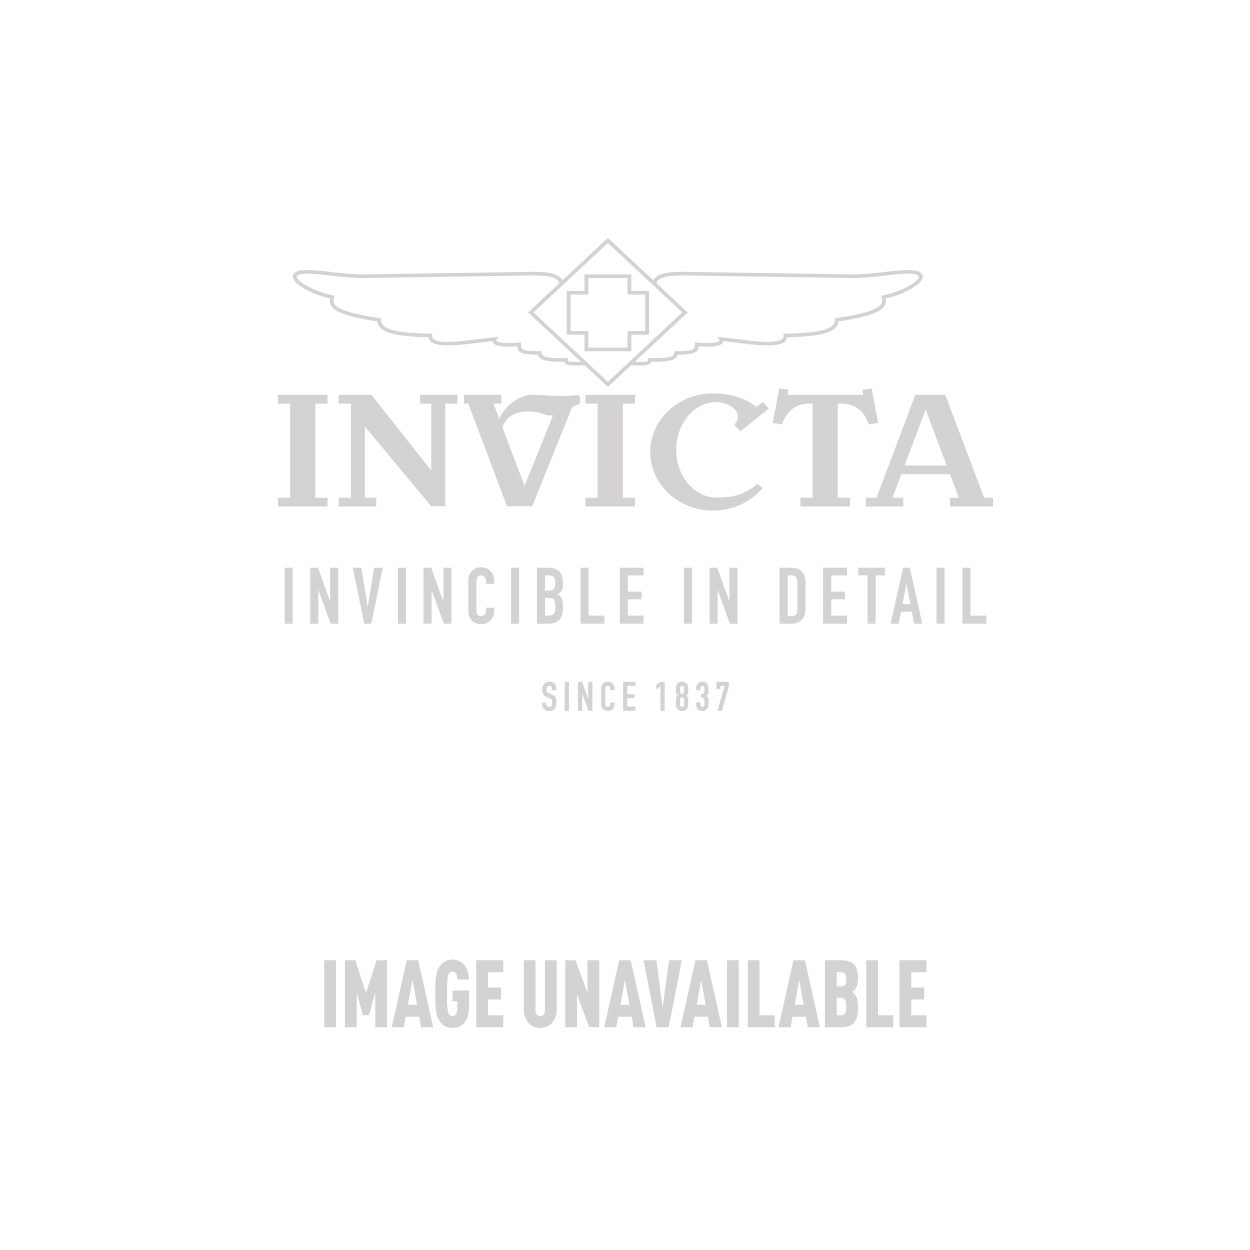 Invicta Specialty Quartz Watch - Gold case with Gold tone Stainless Steel band - Model 17446